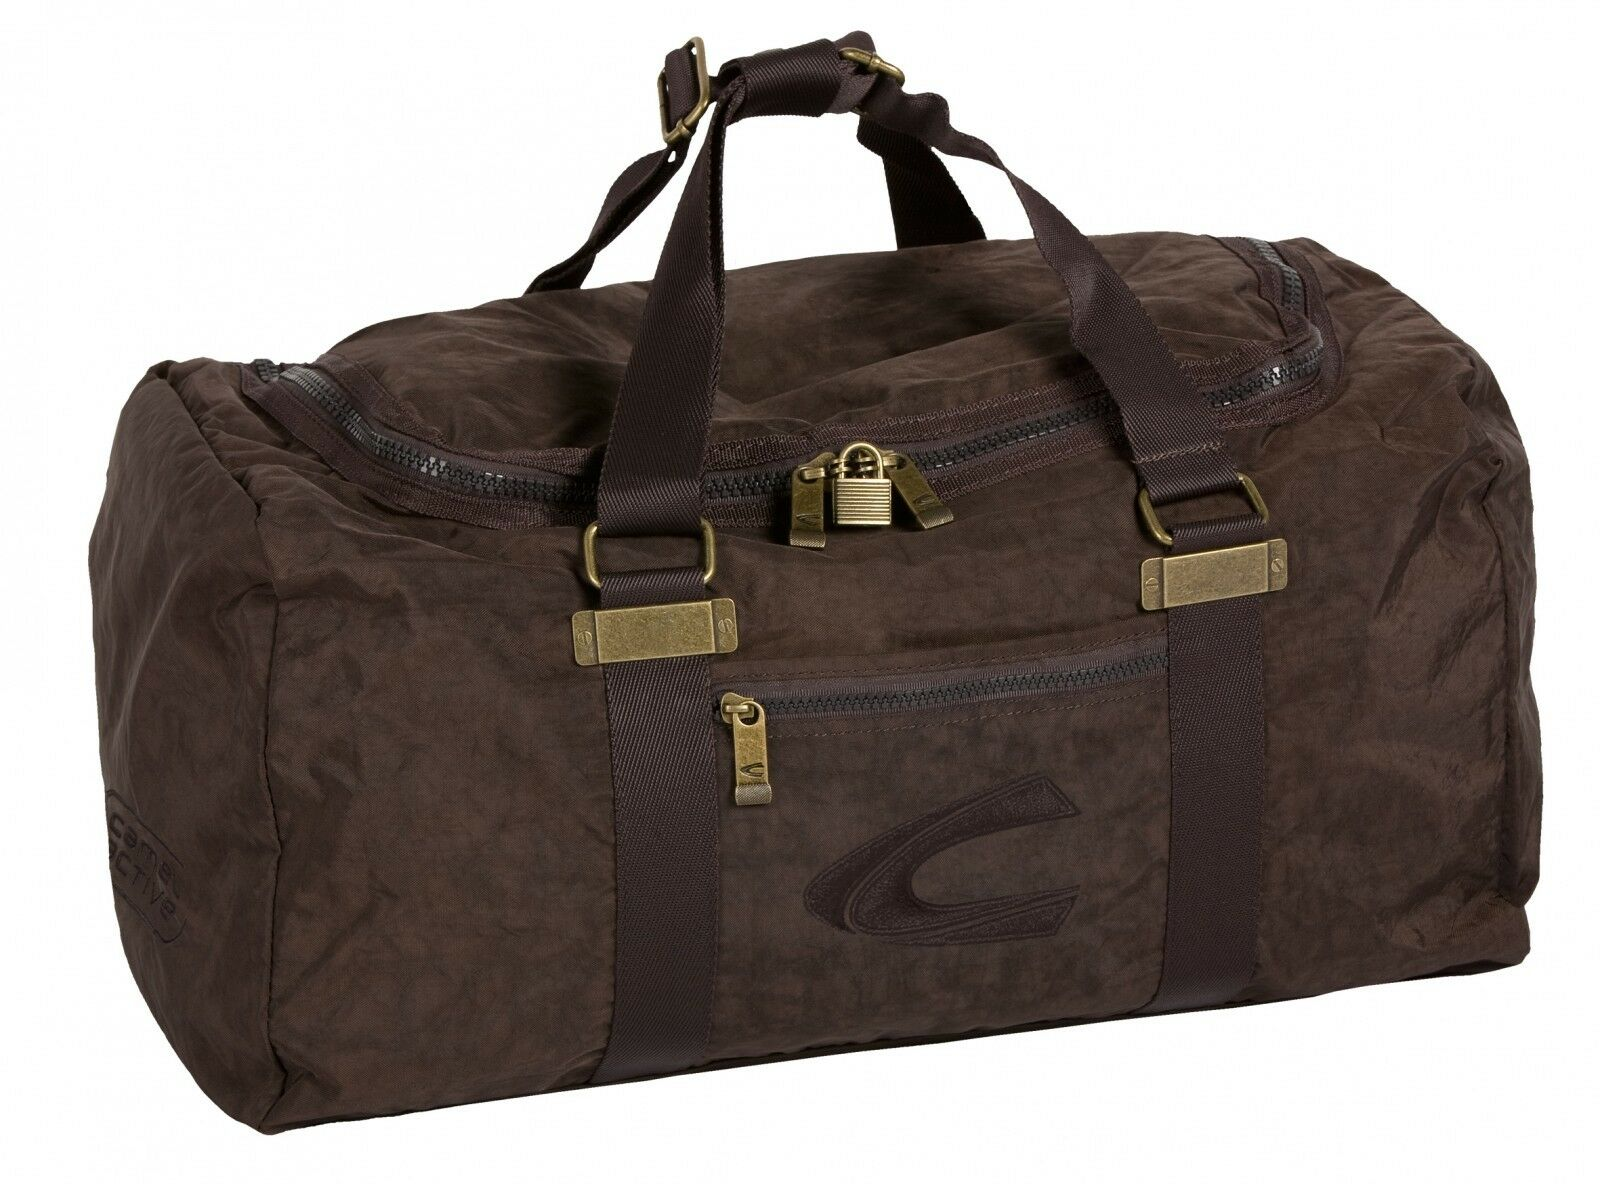 Camel active Sporty Journey Travel Bag S Brown